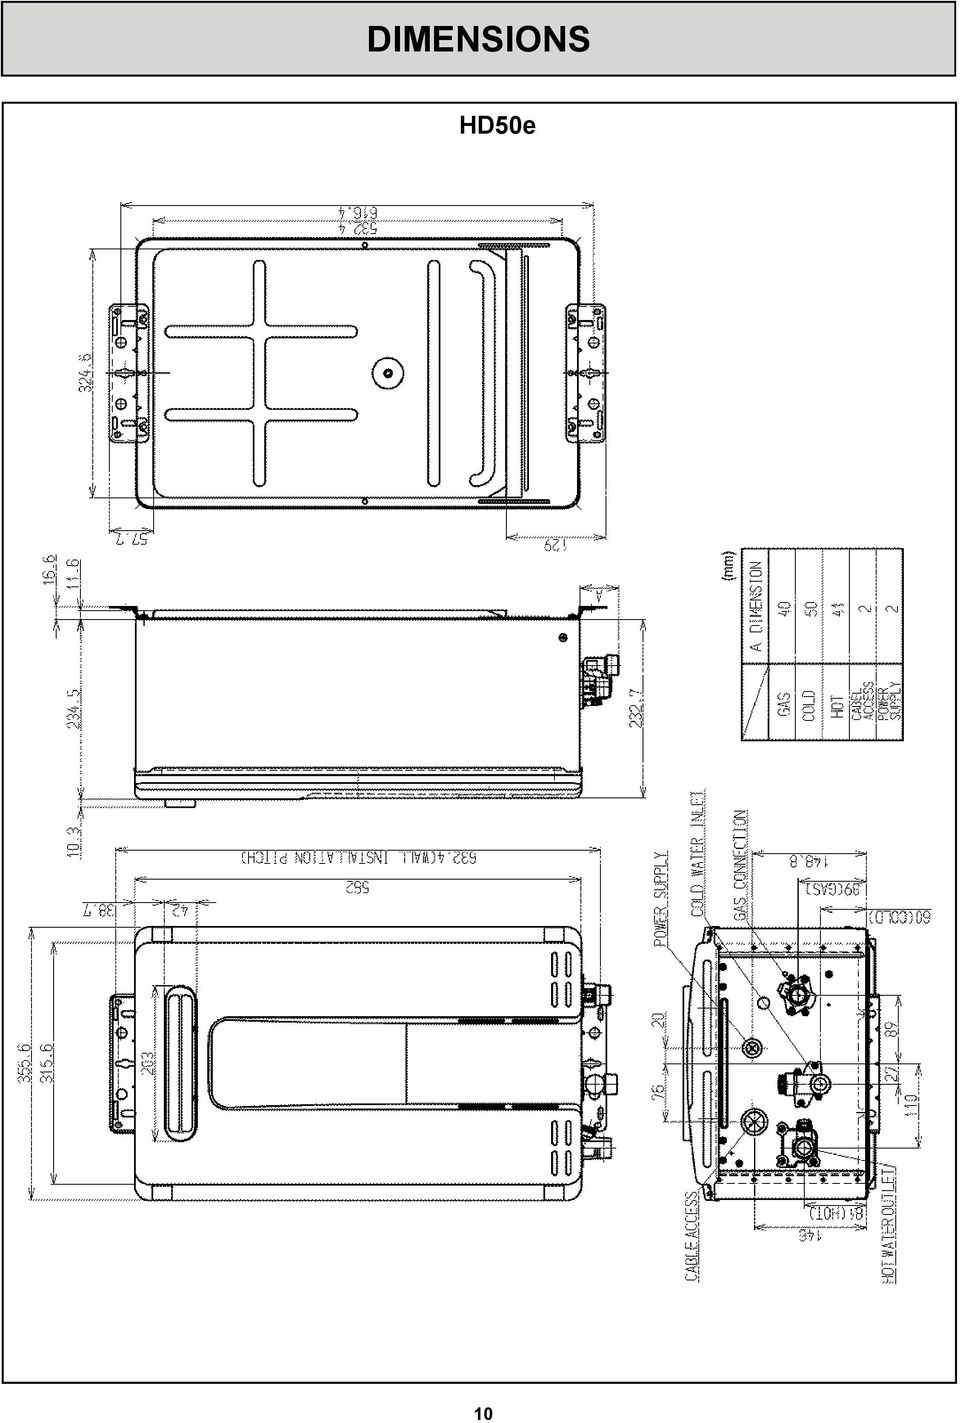 Service Manual Reu Vr2632ffud 26i Vr2632 Ffu Hd E Hd50i Rinnai R85 Gas Valve Wiring Diagram 11 Temperature Controls The Purpose Of A Controller Is To Enable User Have Localised Control Over Hot Water Supply